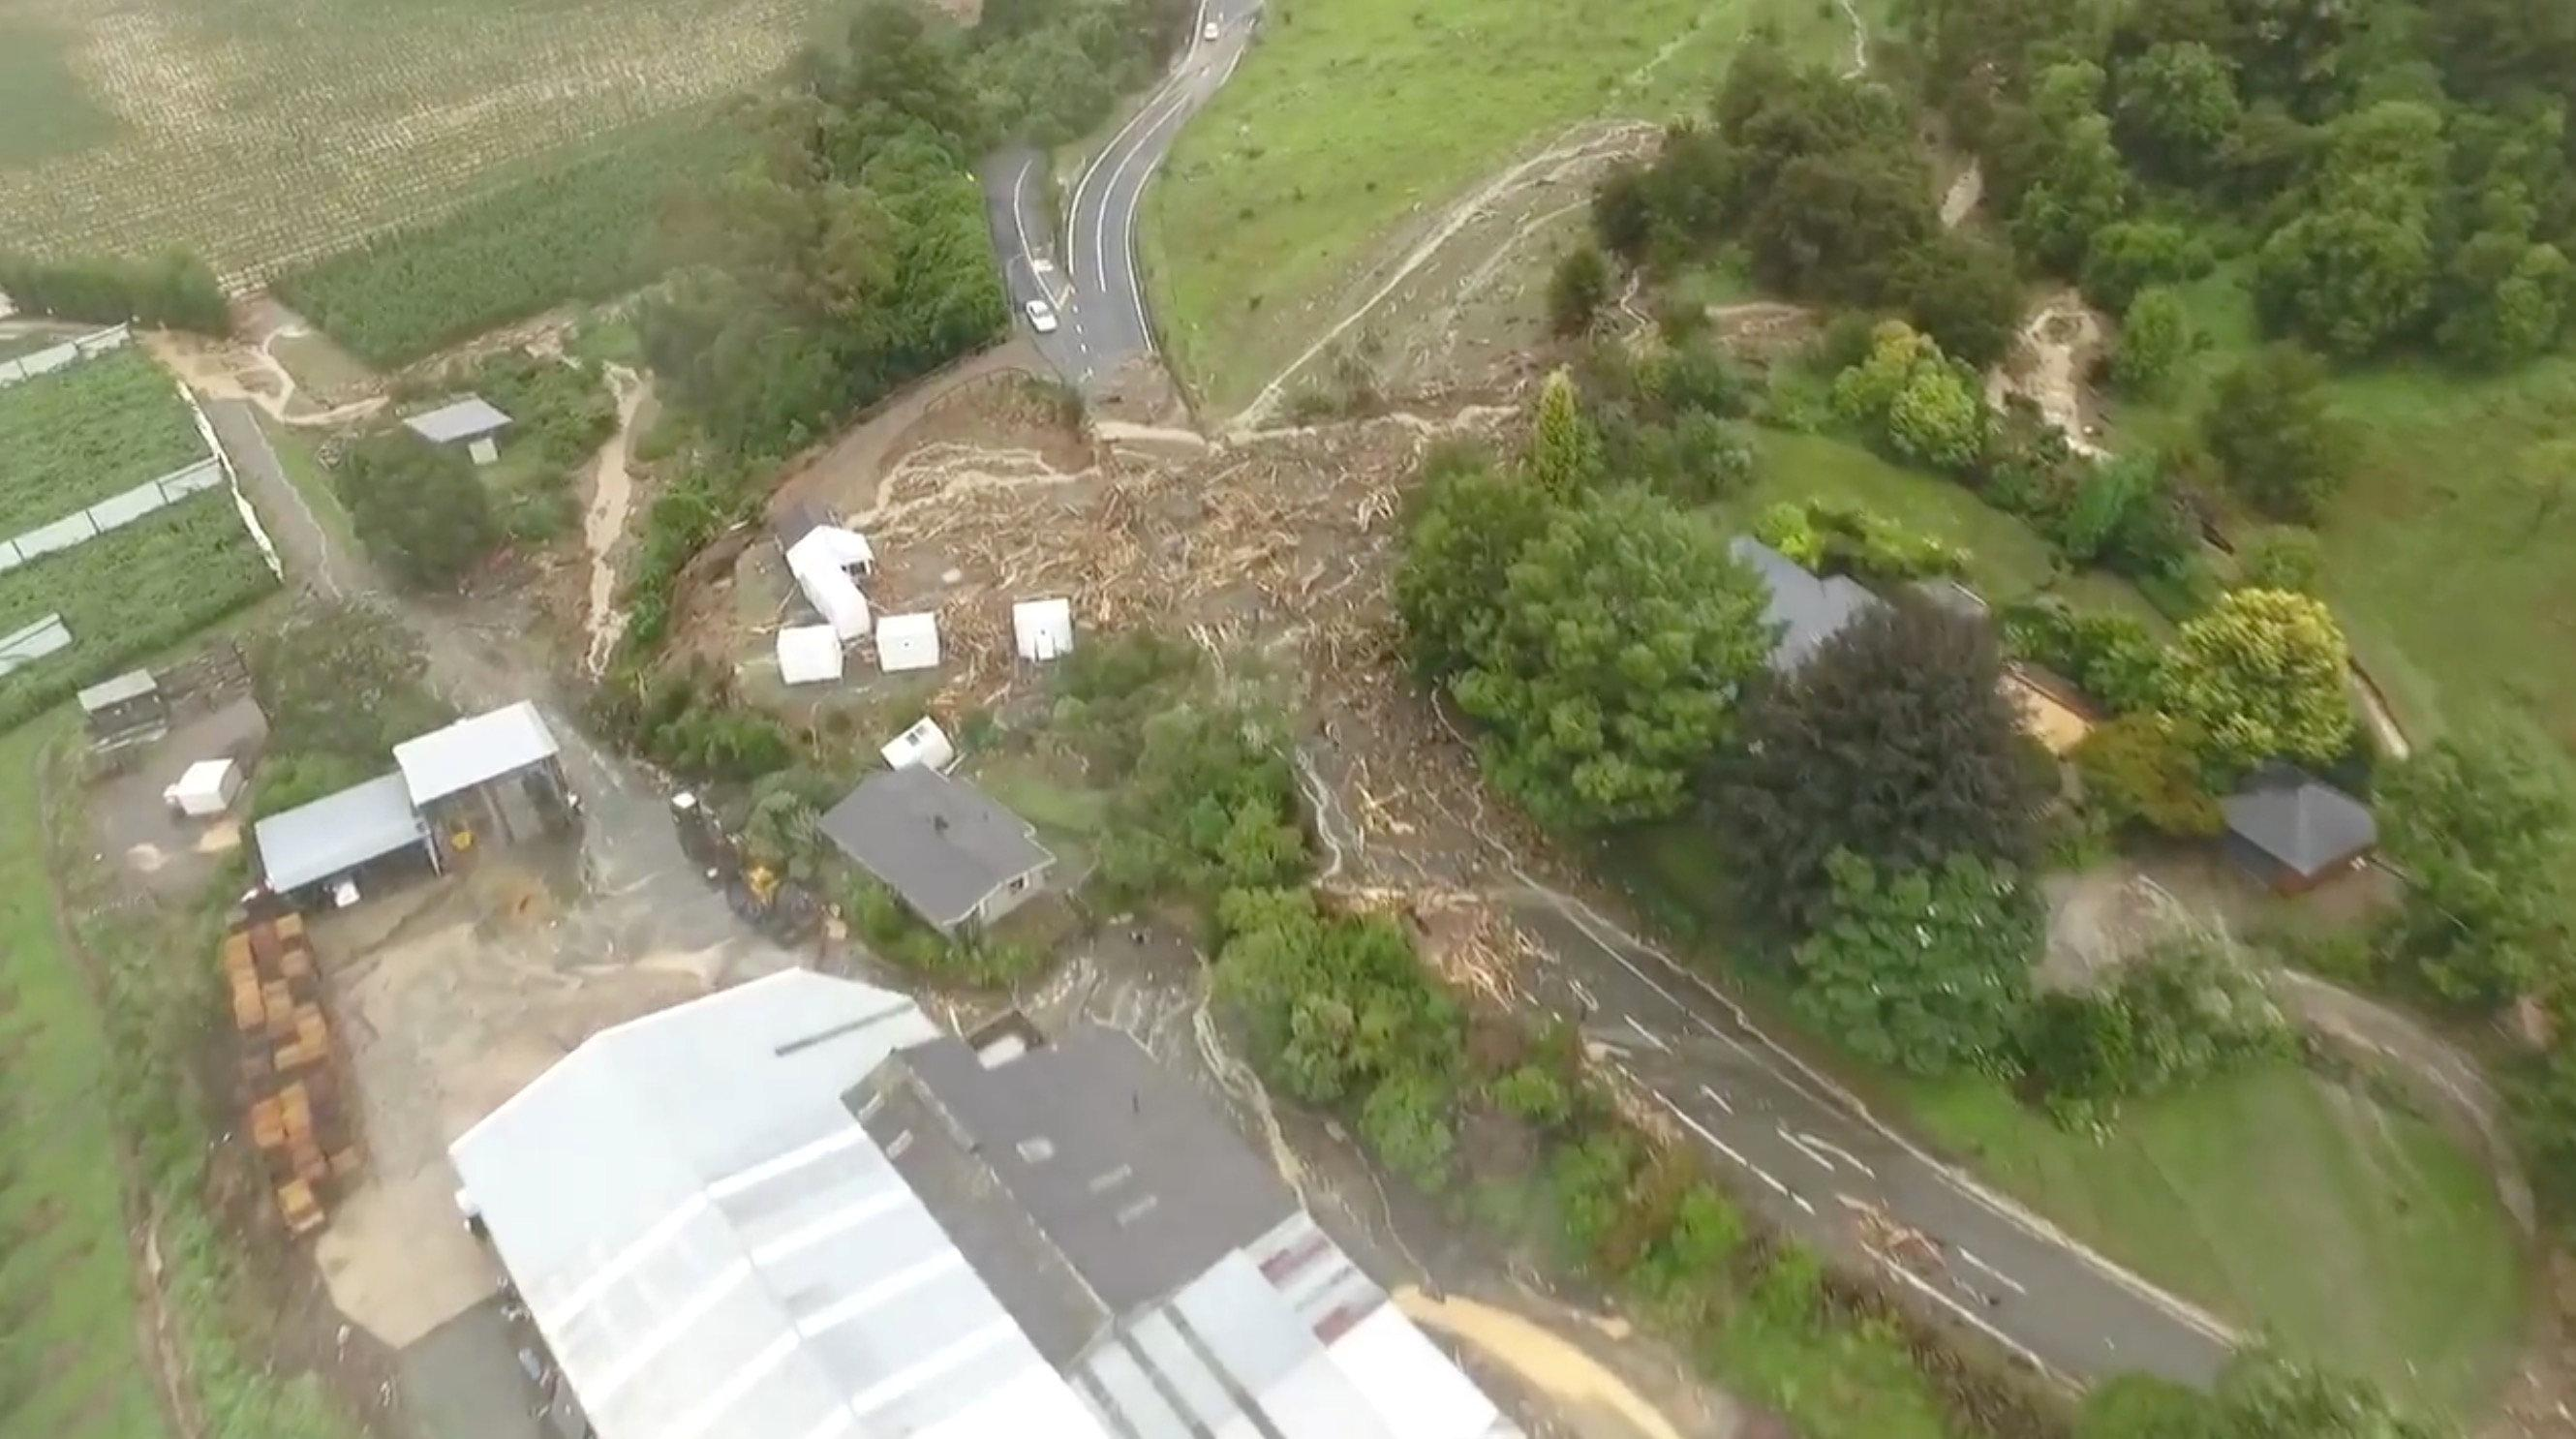 The Takaka Hill is pictured after the storm Gita hit New Zealand, in this still image taken from a drone footage from February 20, 2018 obtained from social media. James Thomas via